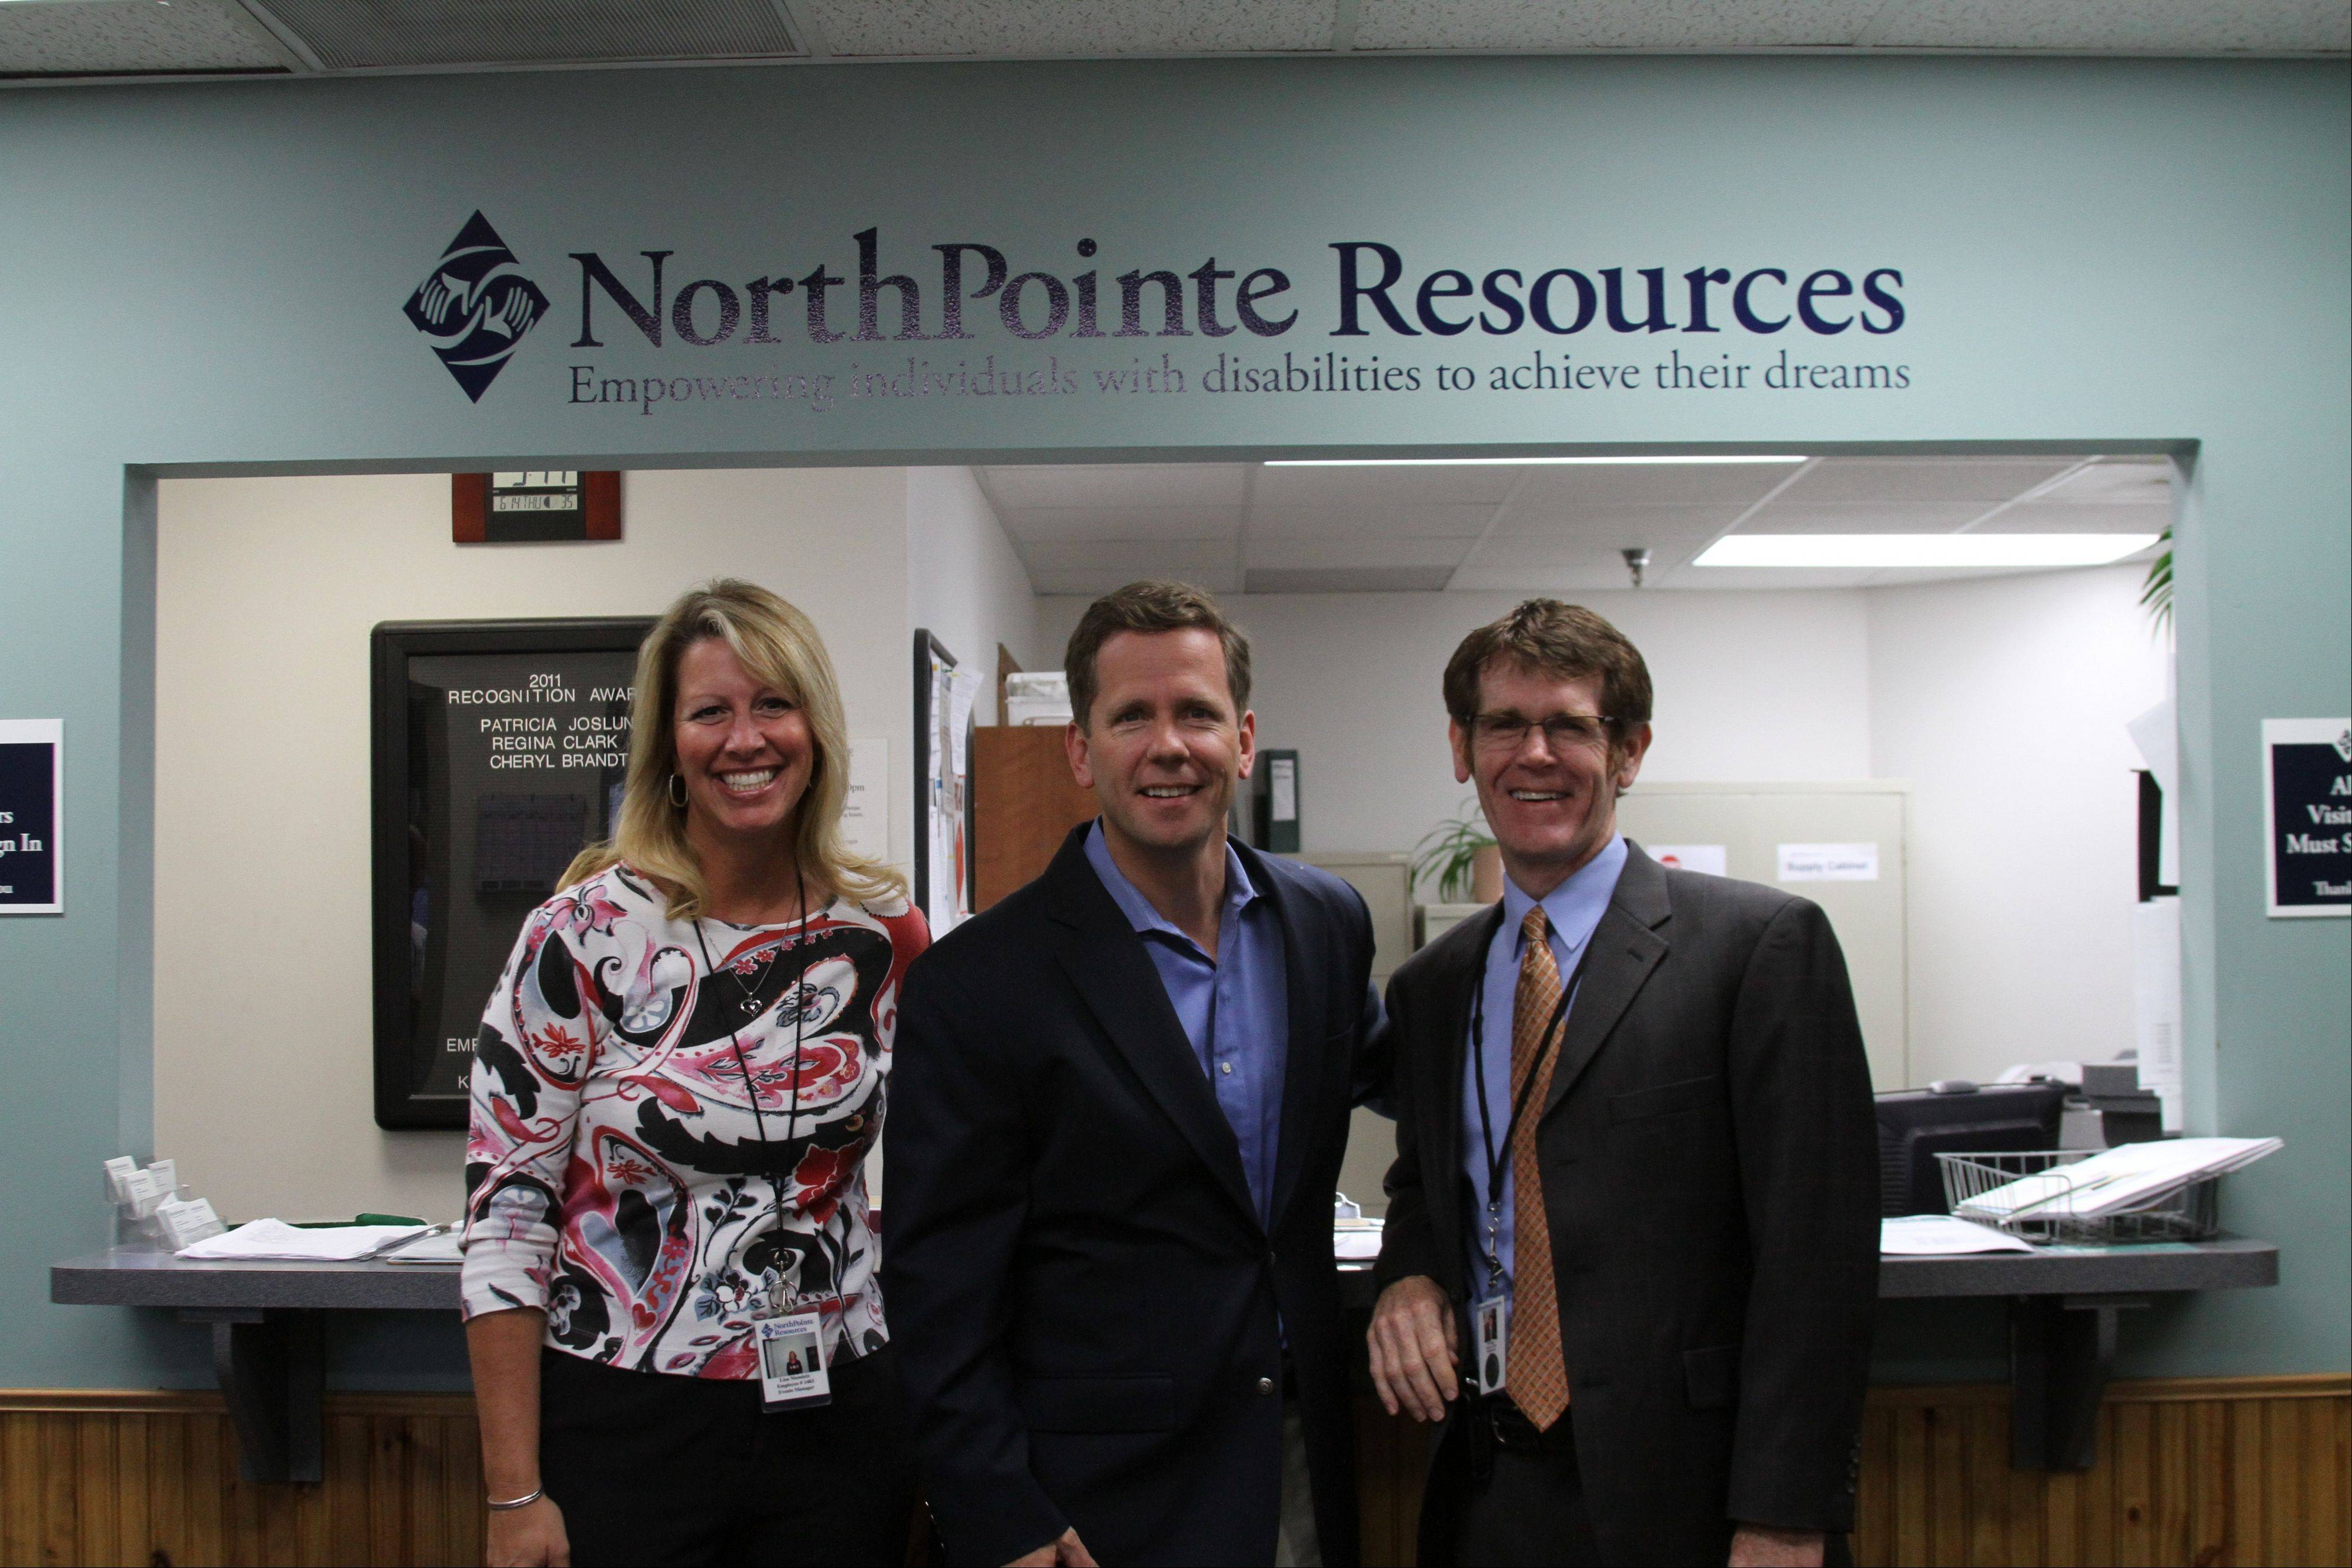 NorthPointe Development Manager Lisa Niemietz, U.S. Rep. Robert Dold and NorthPointe CEO Karl Kopp.